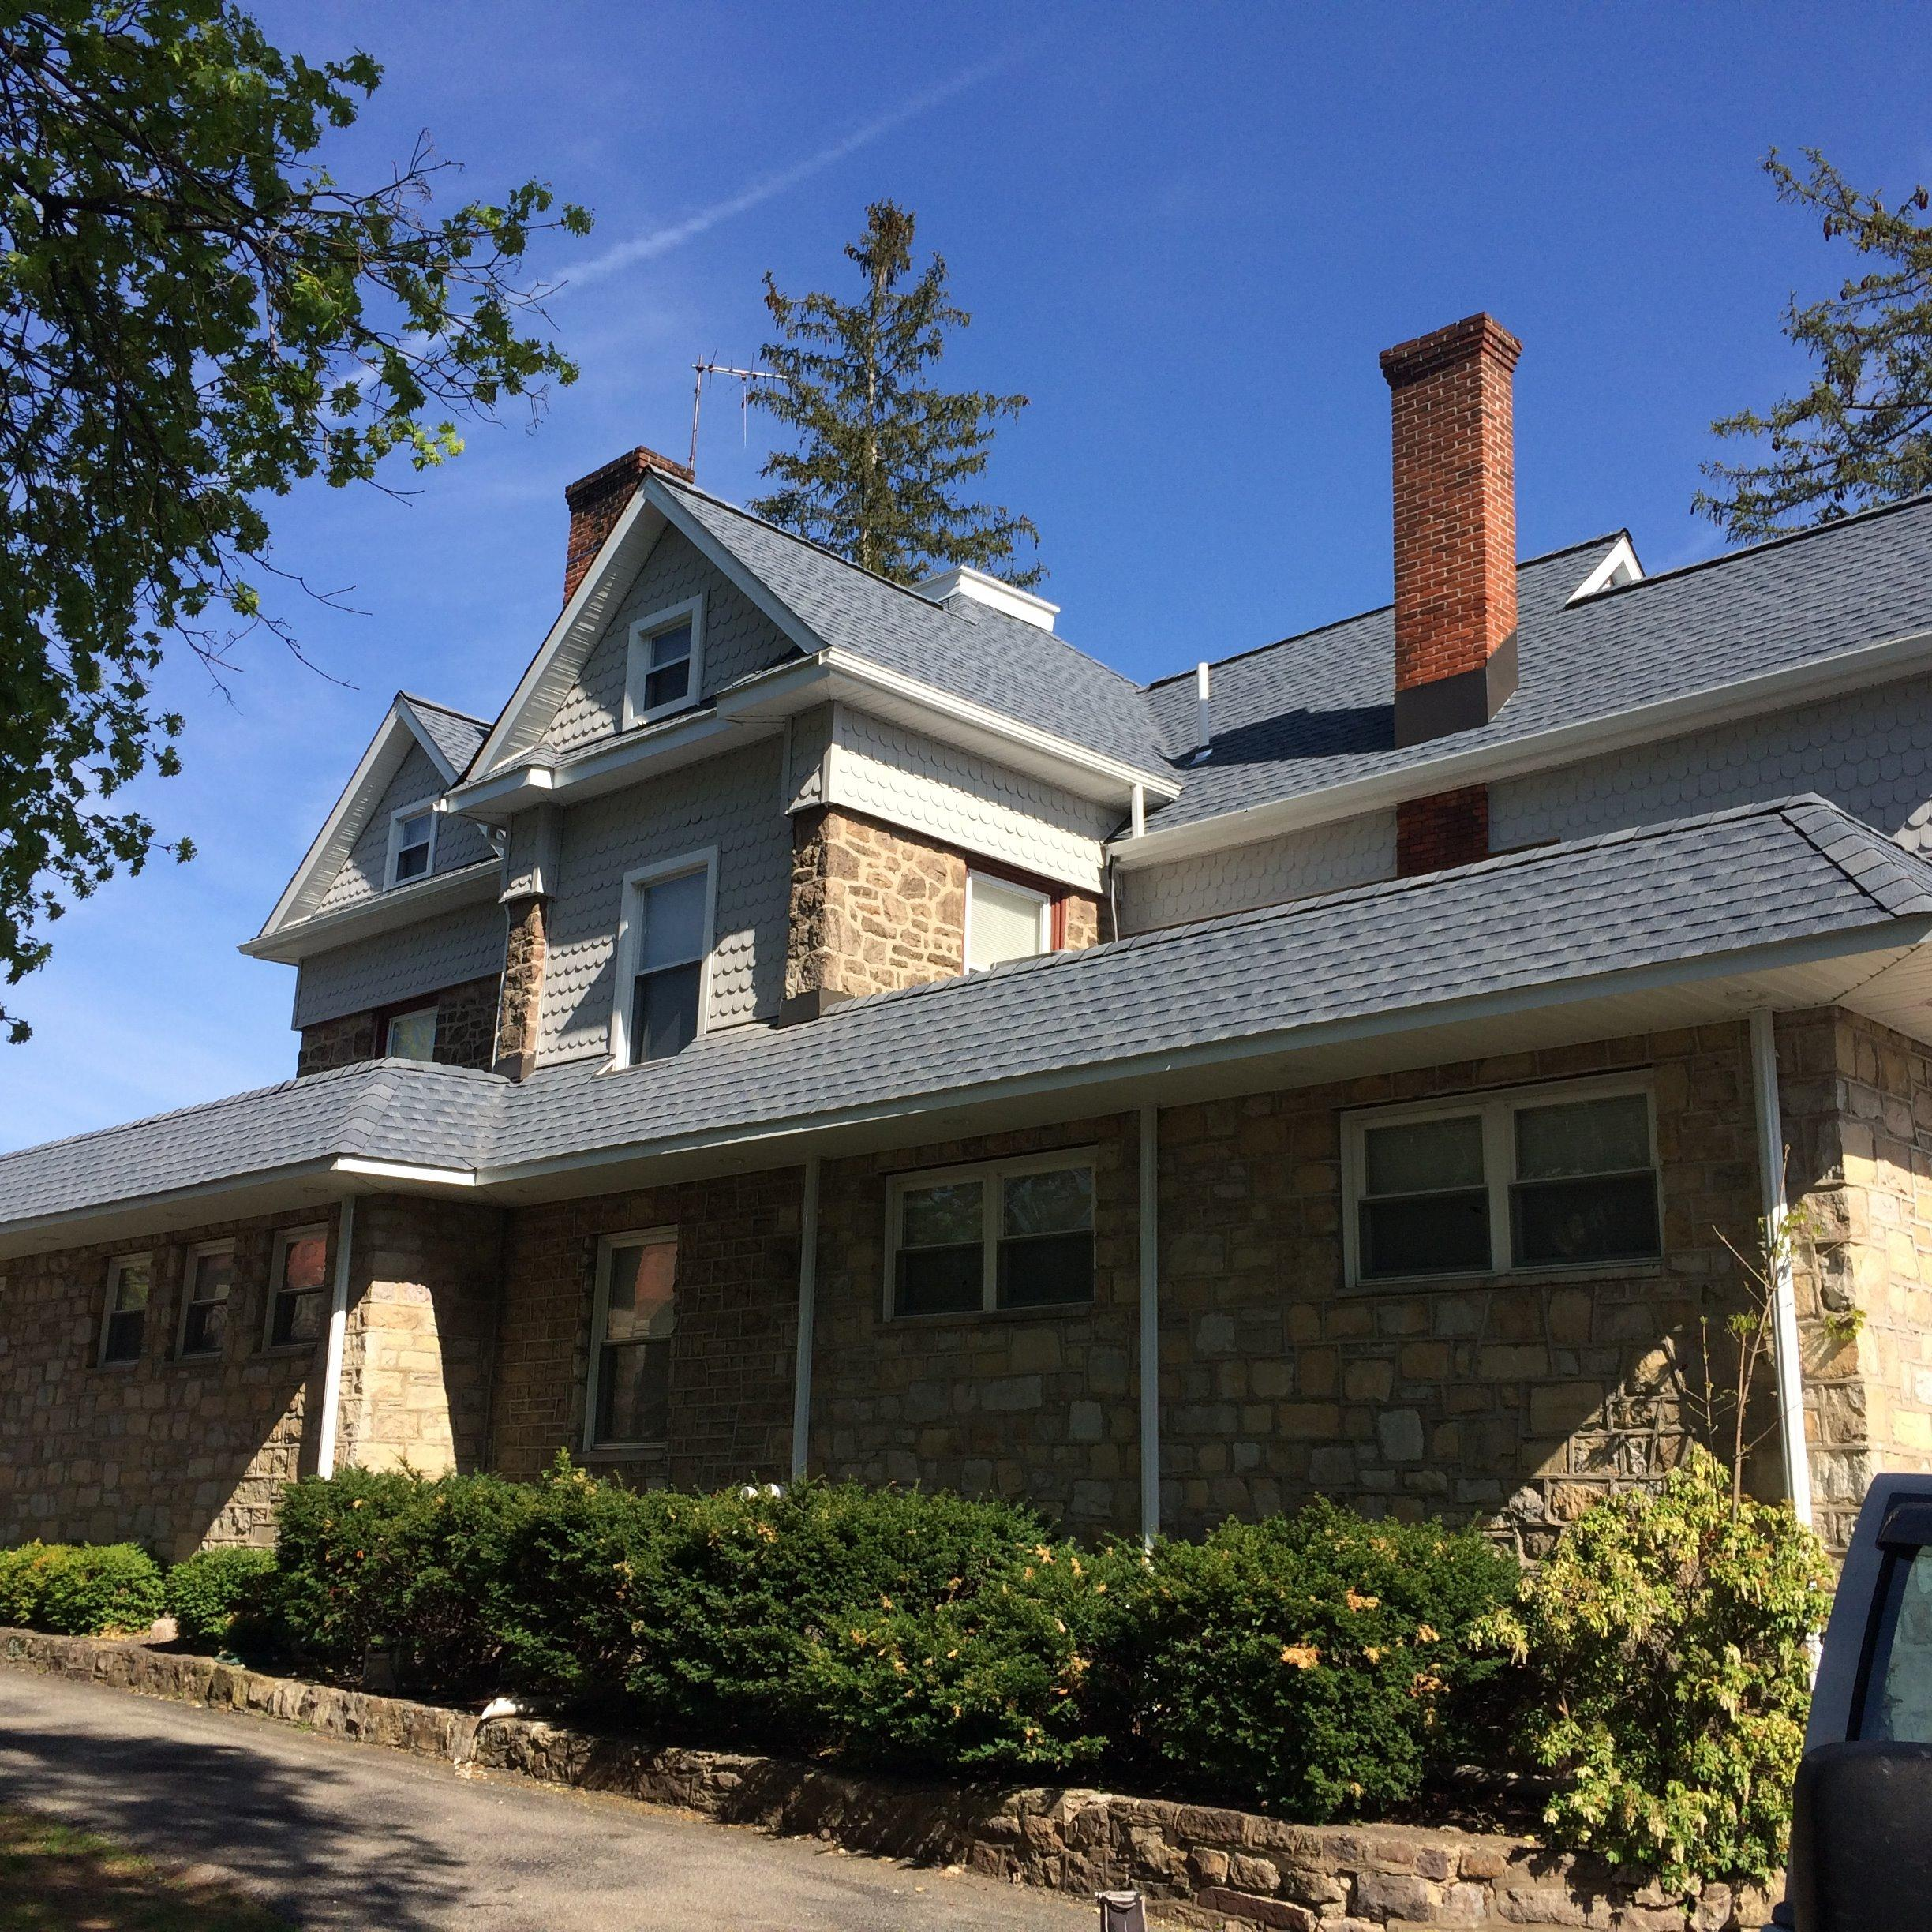 HILLCREST ROOFING AND SIDING LLC